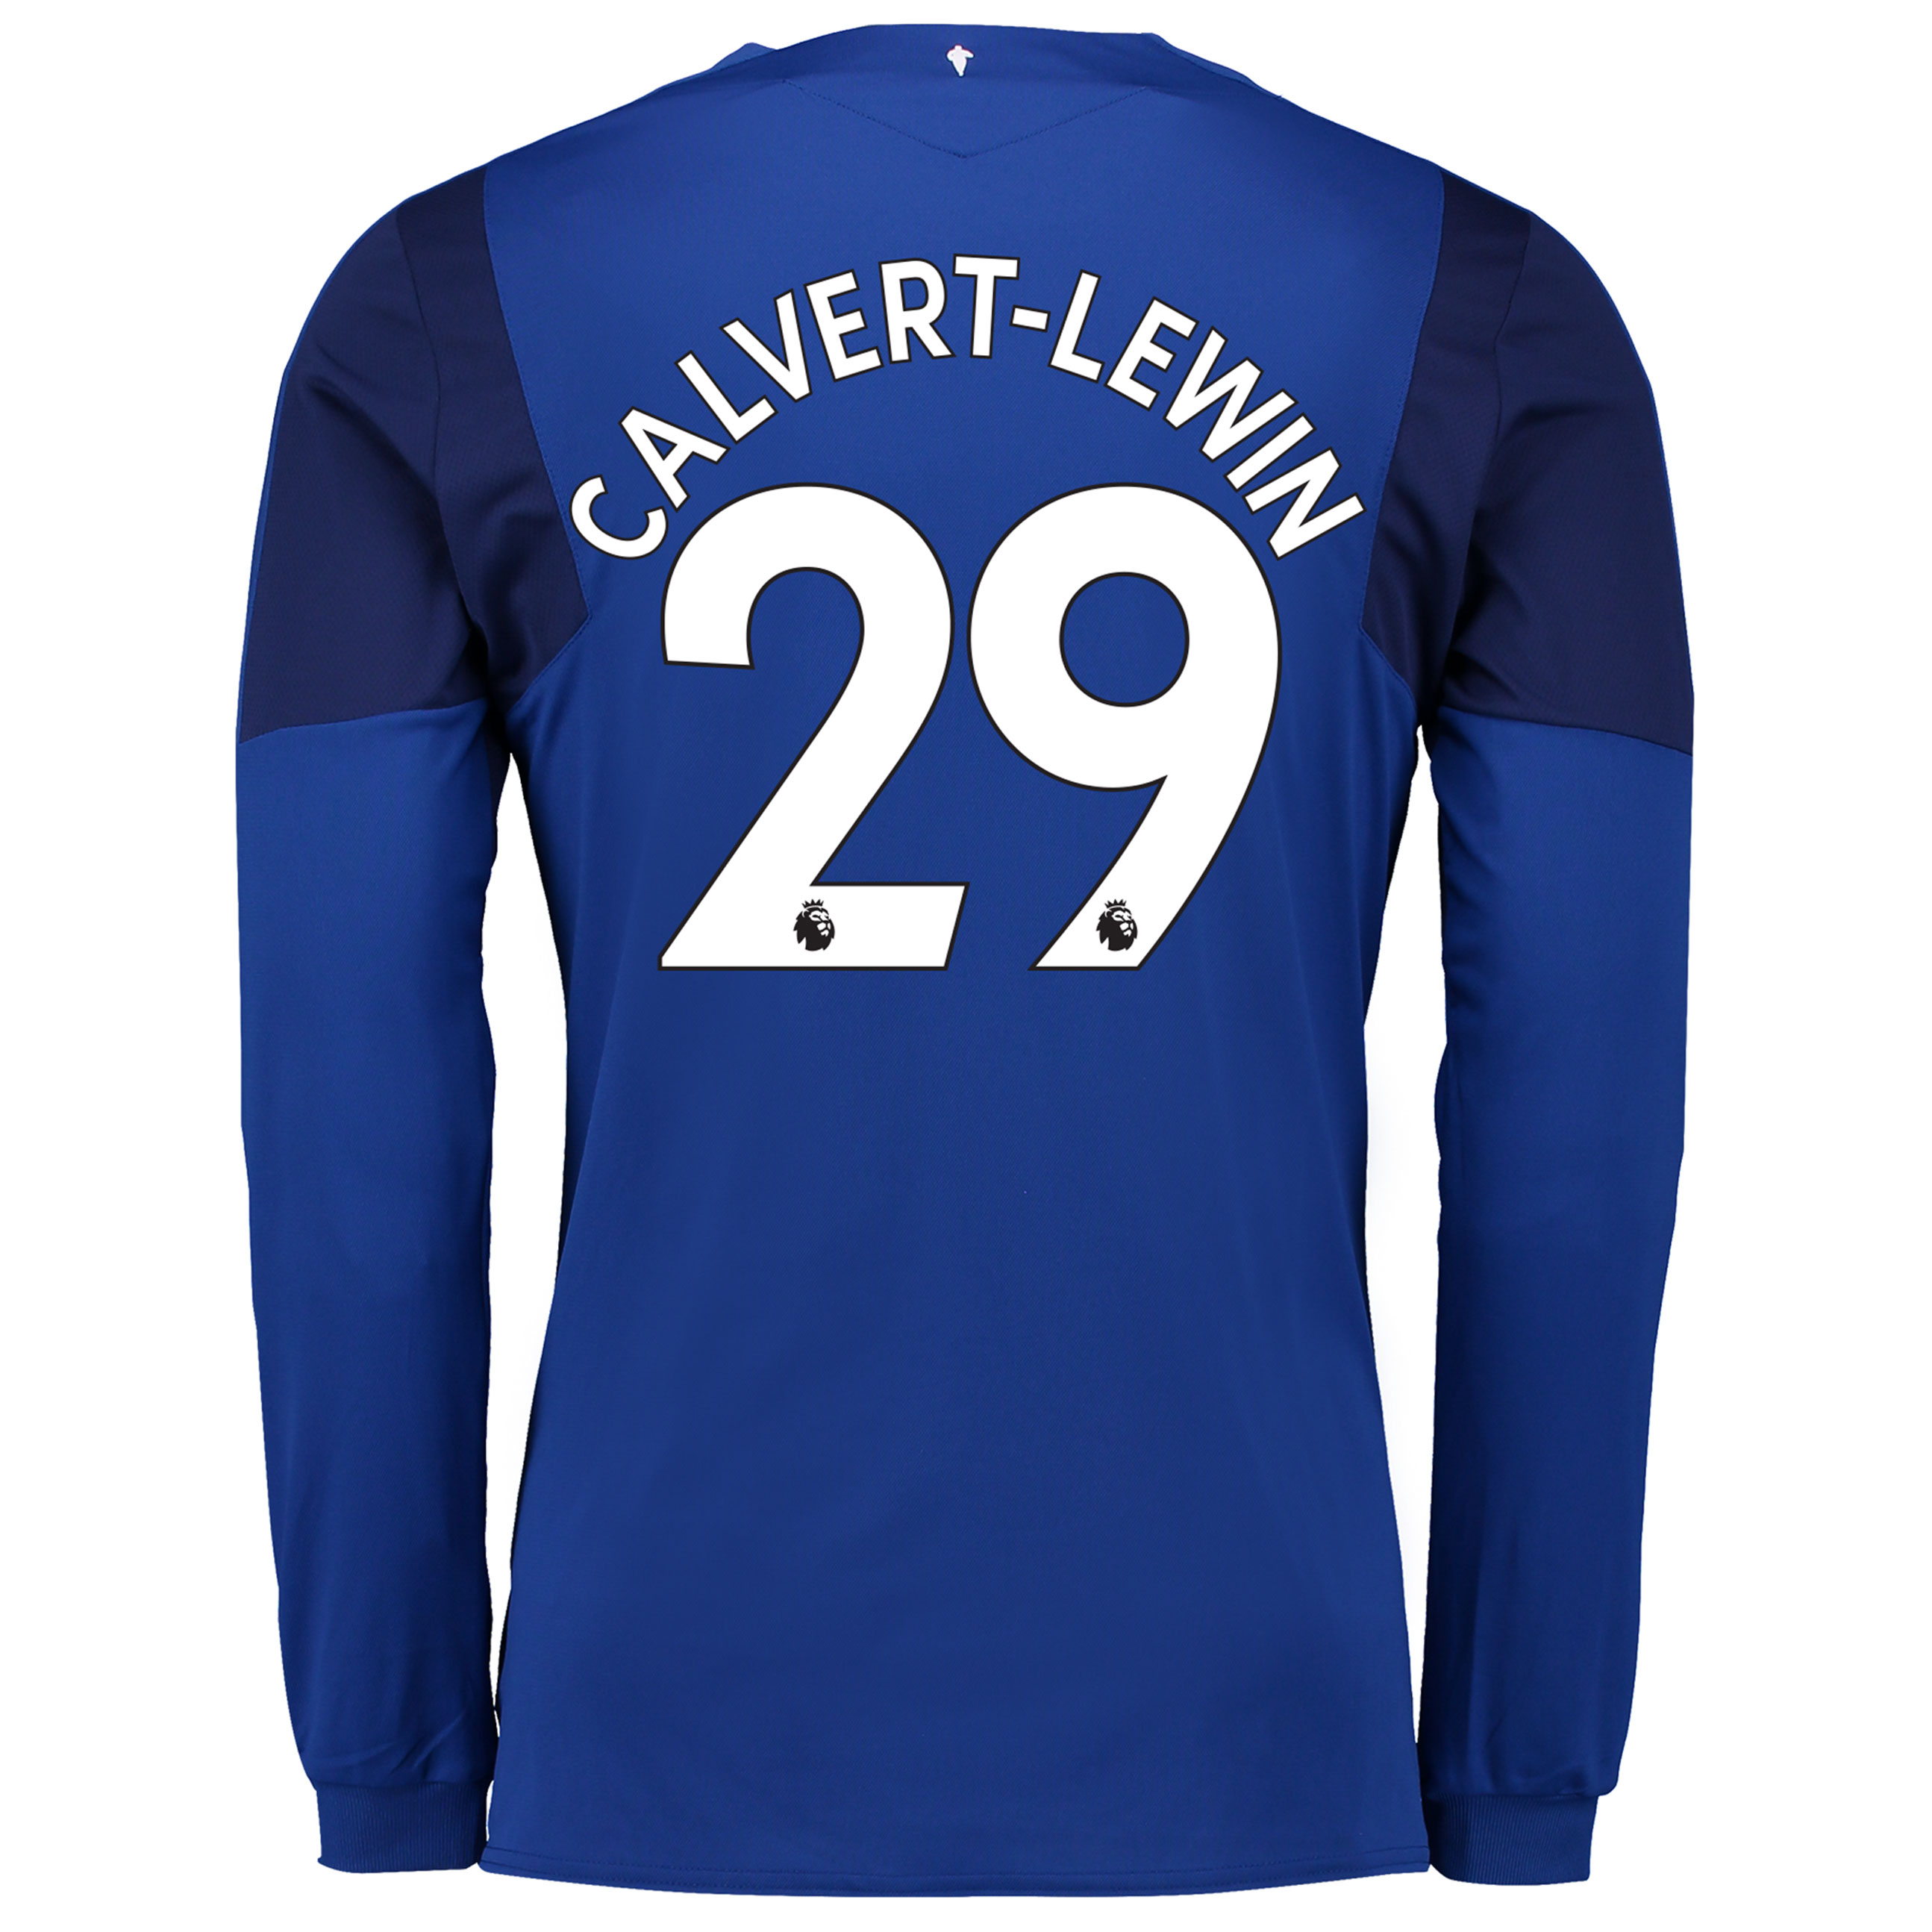 Everton Home Shirt 2017/18 - Long Sleeved with Calvert-Lewin 29 printi